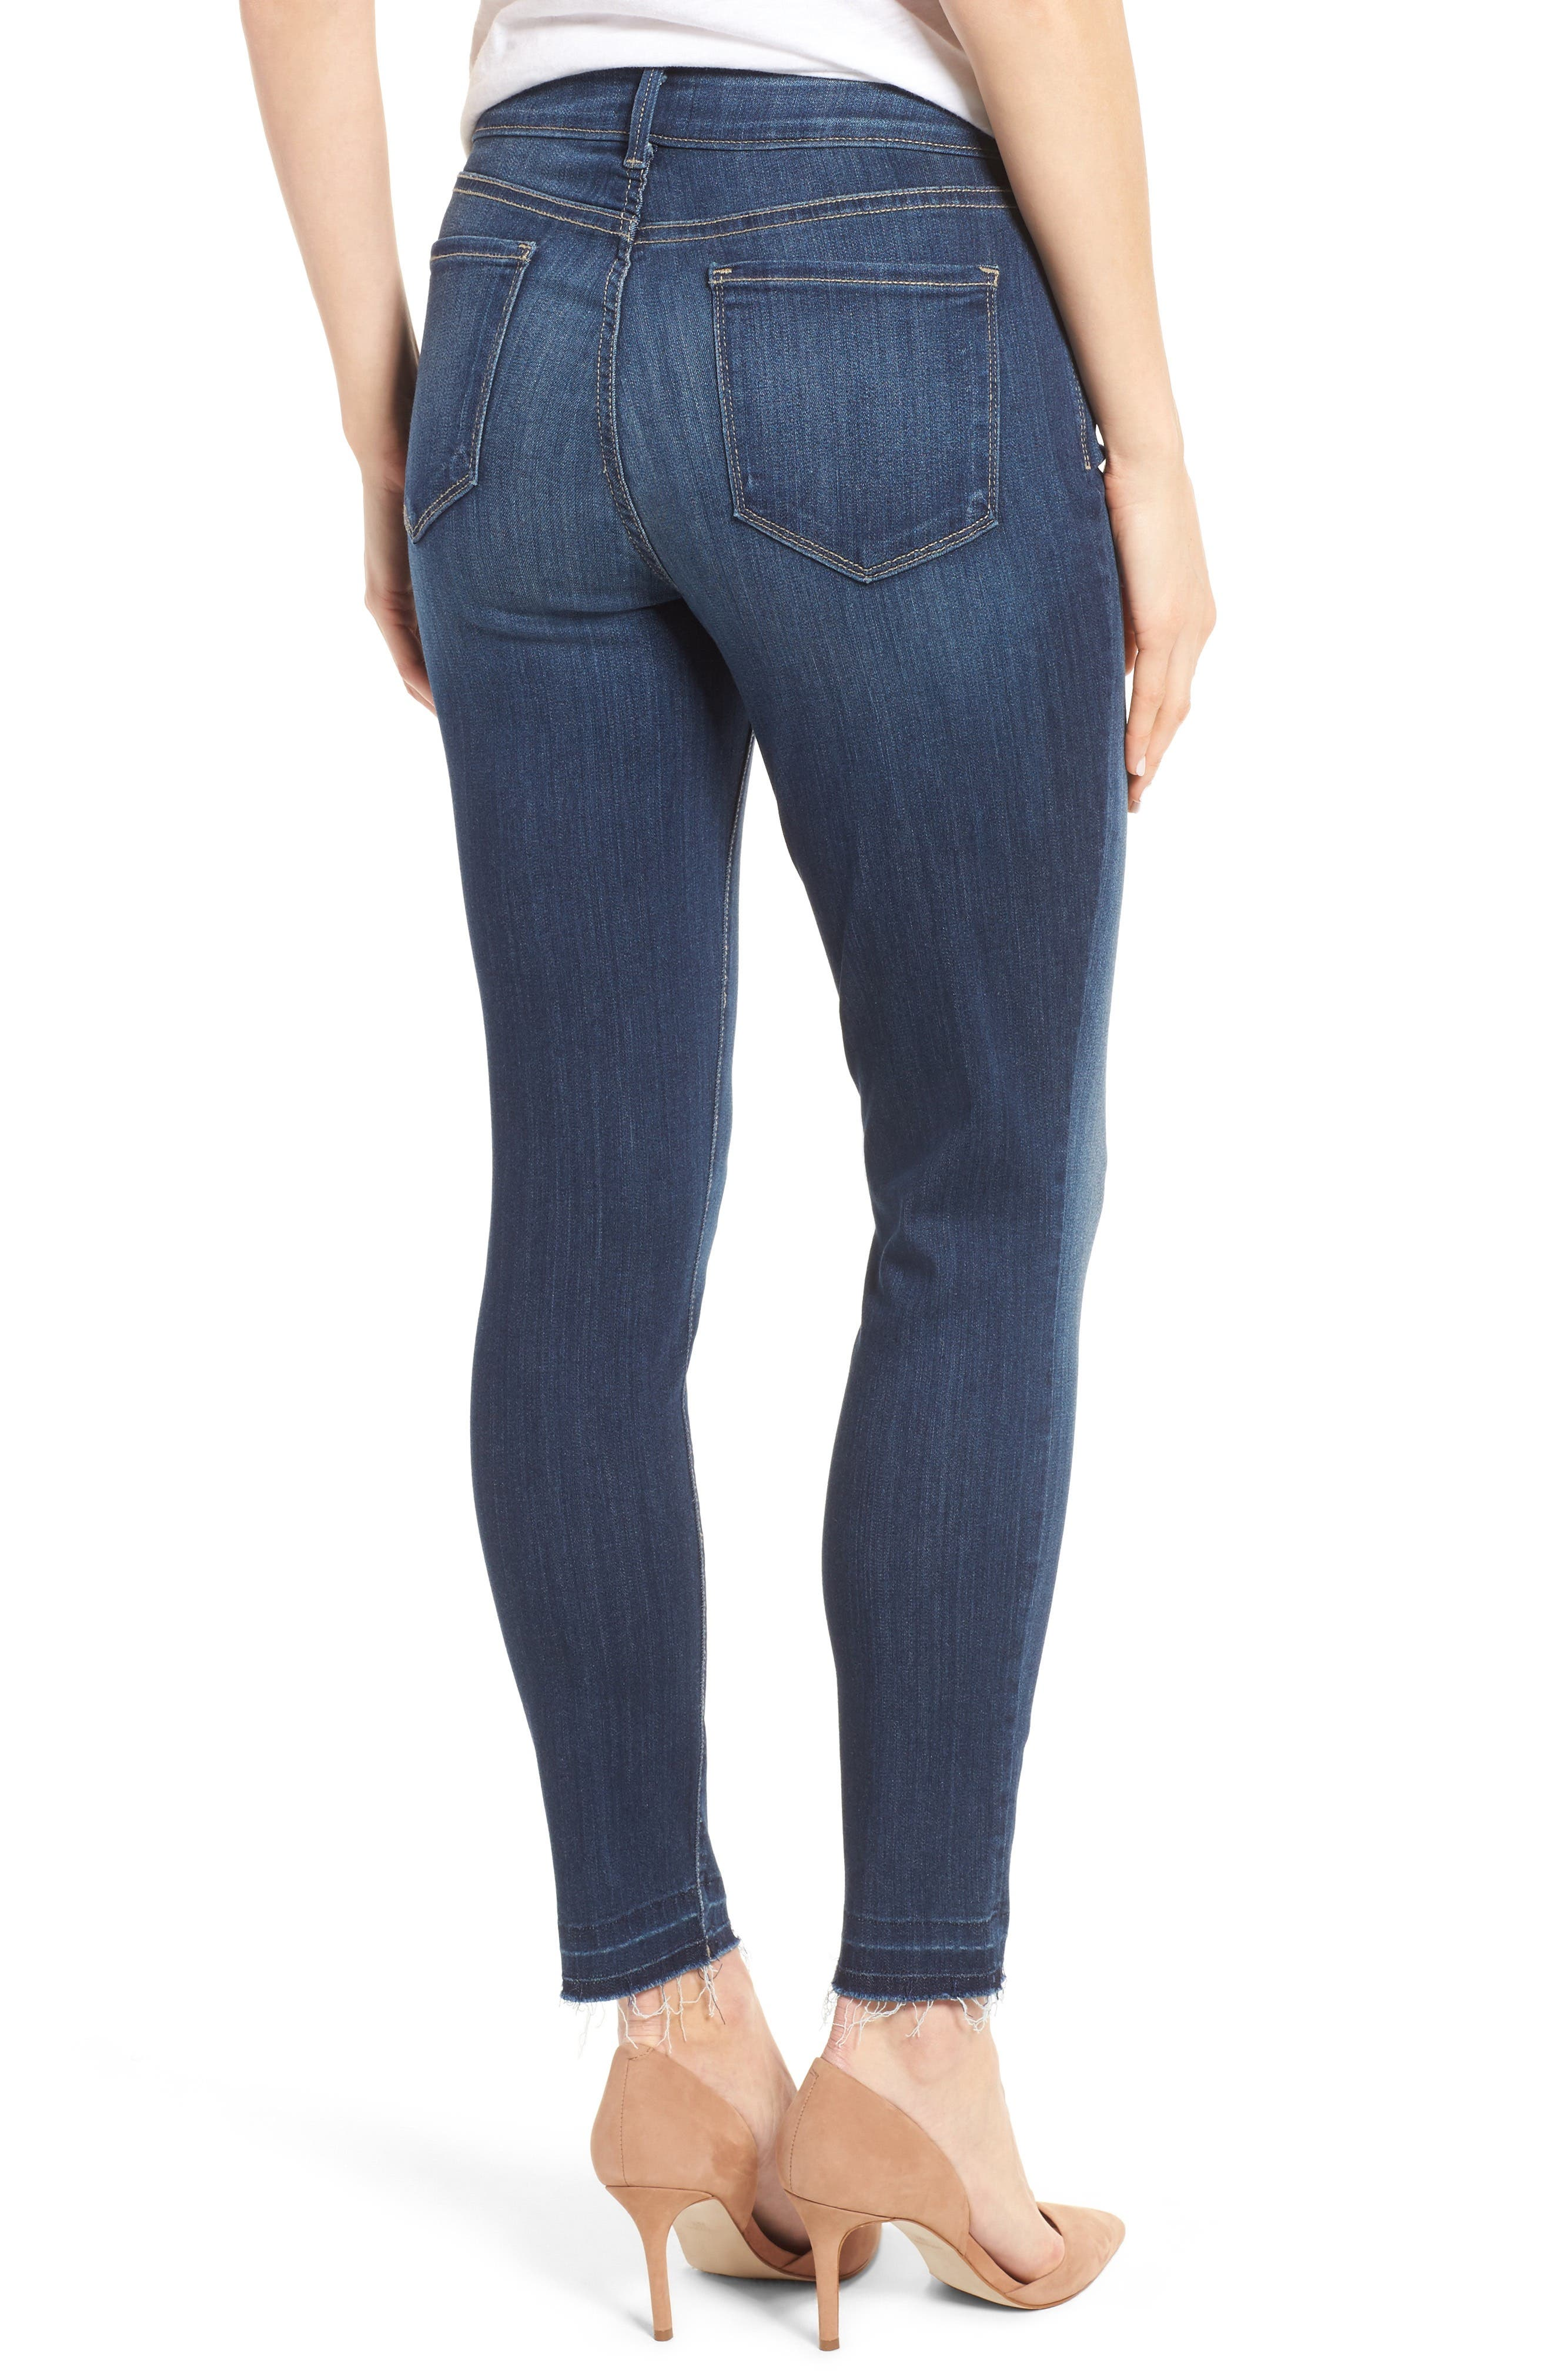 Ami Release Hem Stretch Skinny Jeans,                             Alternate thumbnail 2, color,                             428